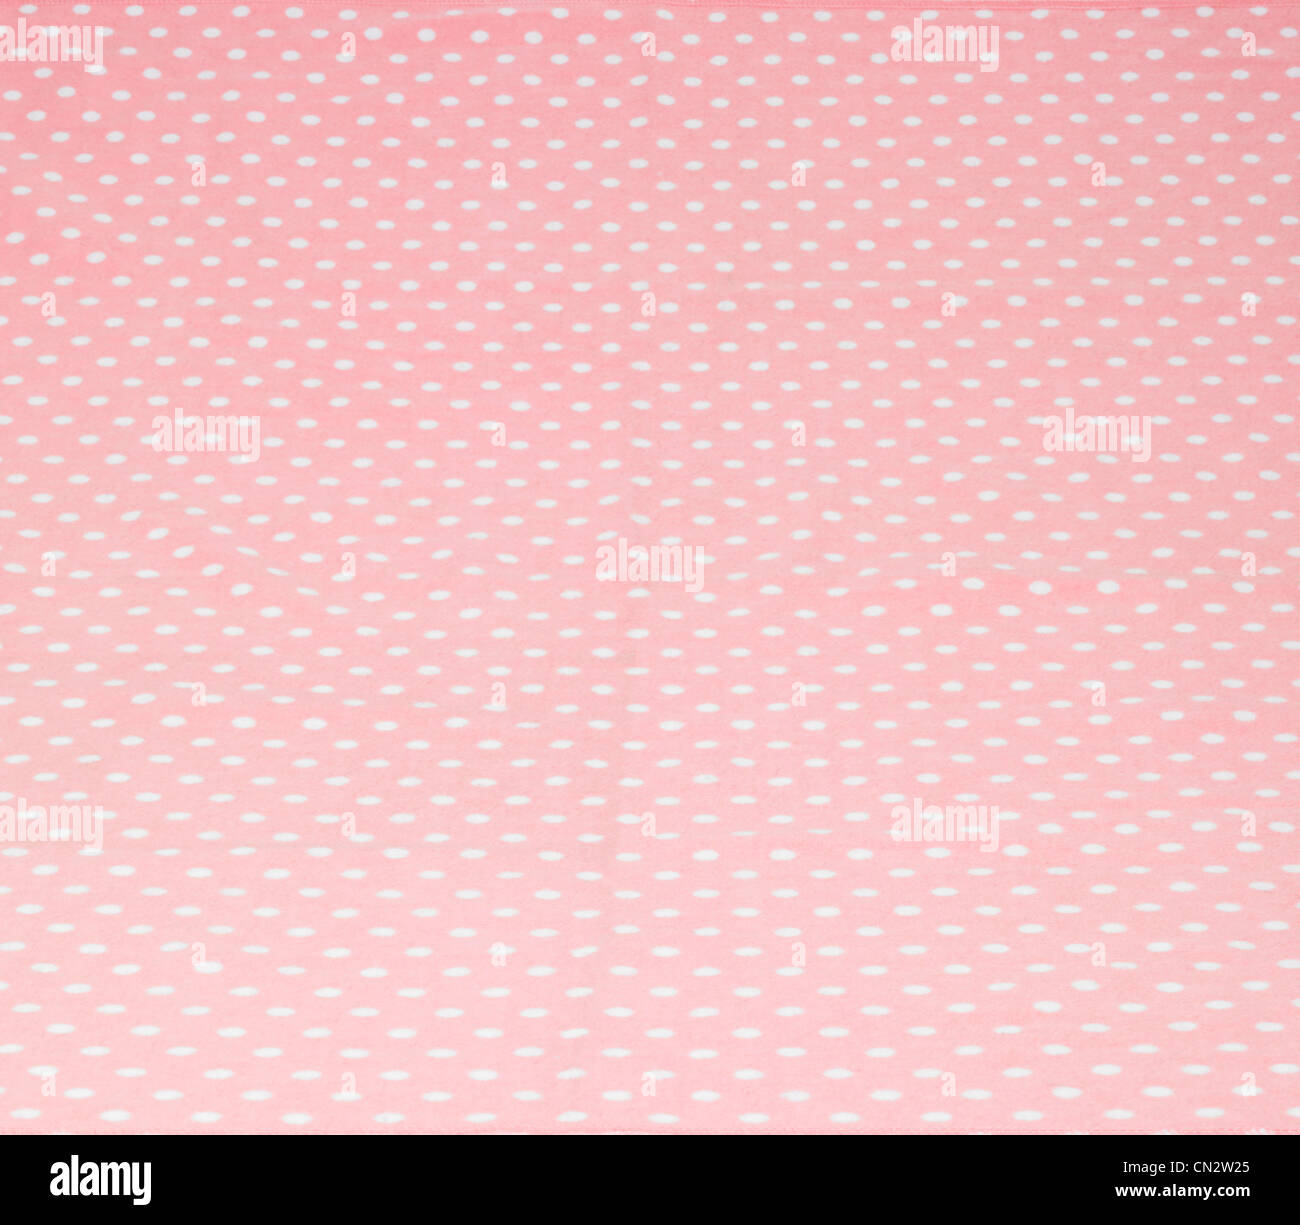 Pink Fabric With White Polka Dots - Stock Image